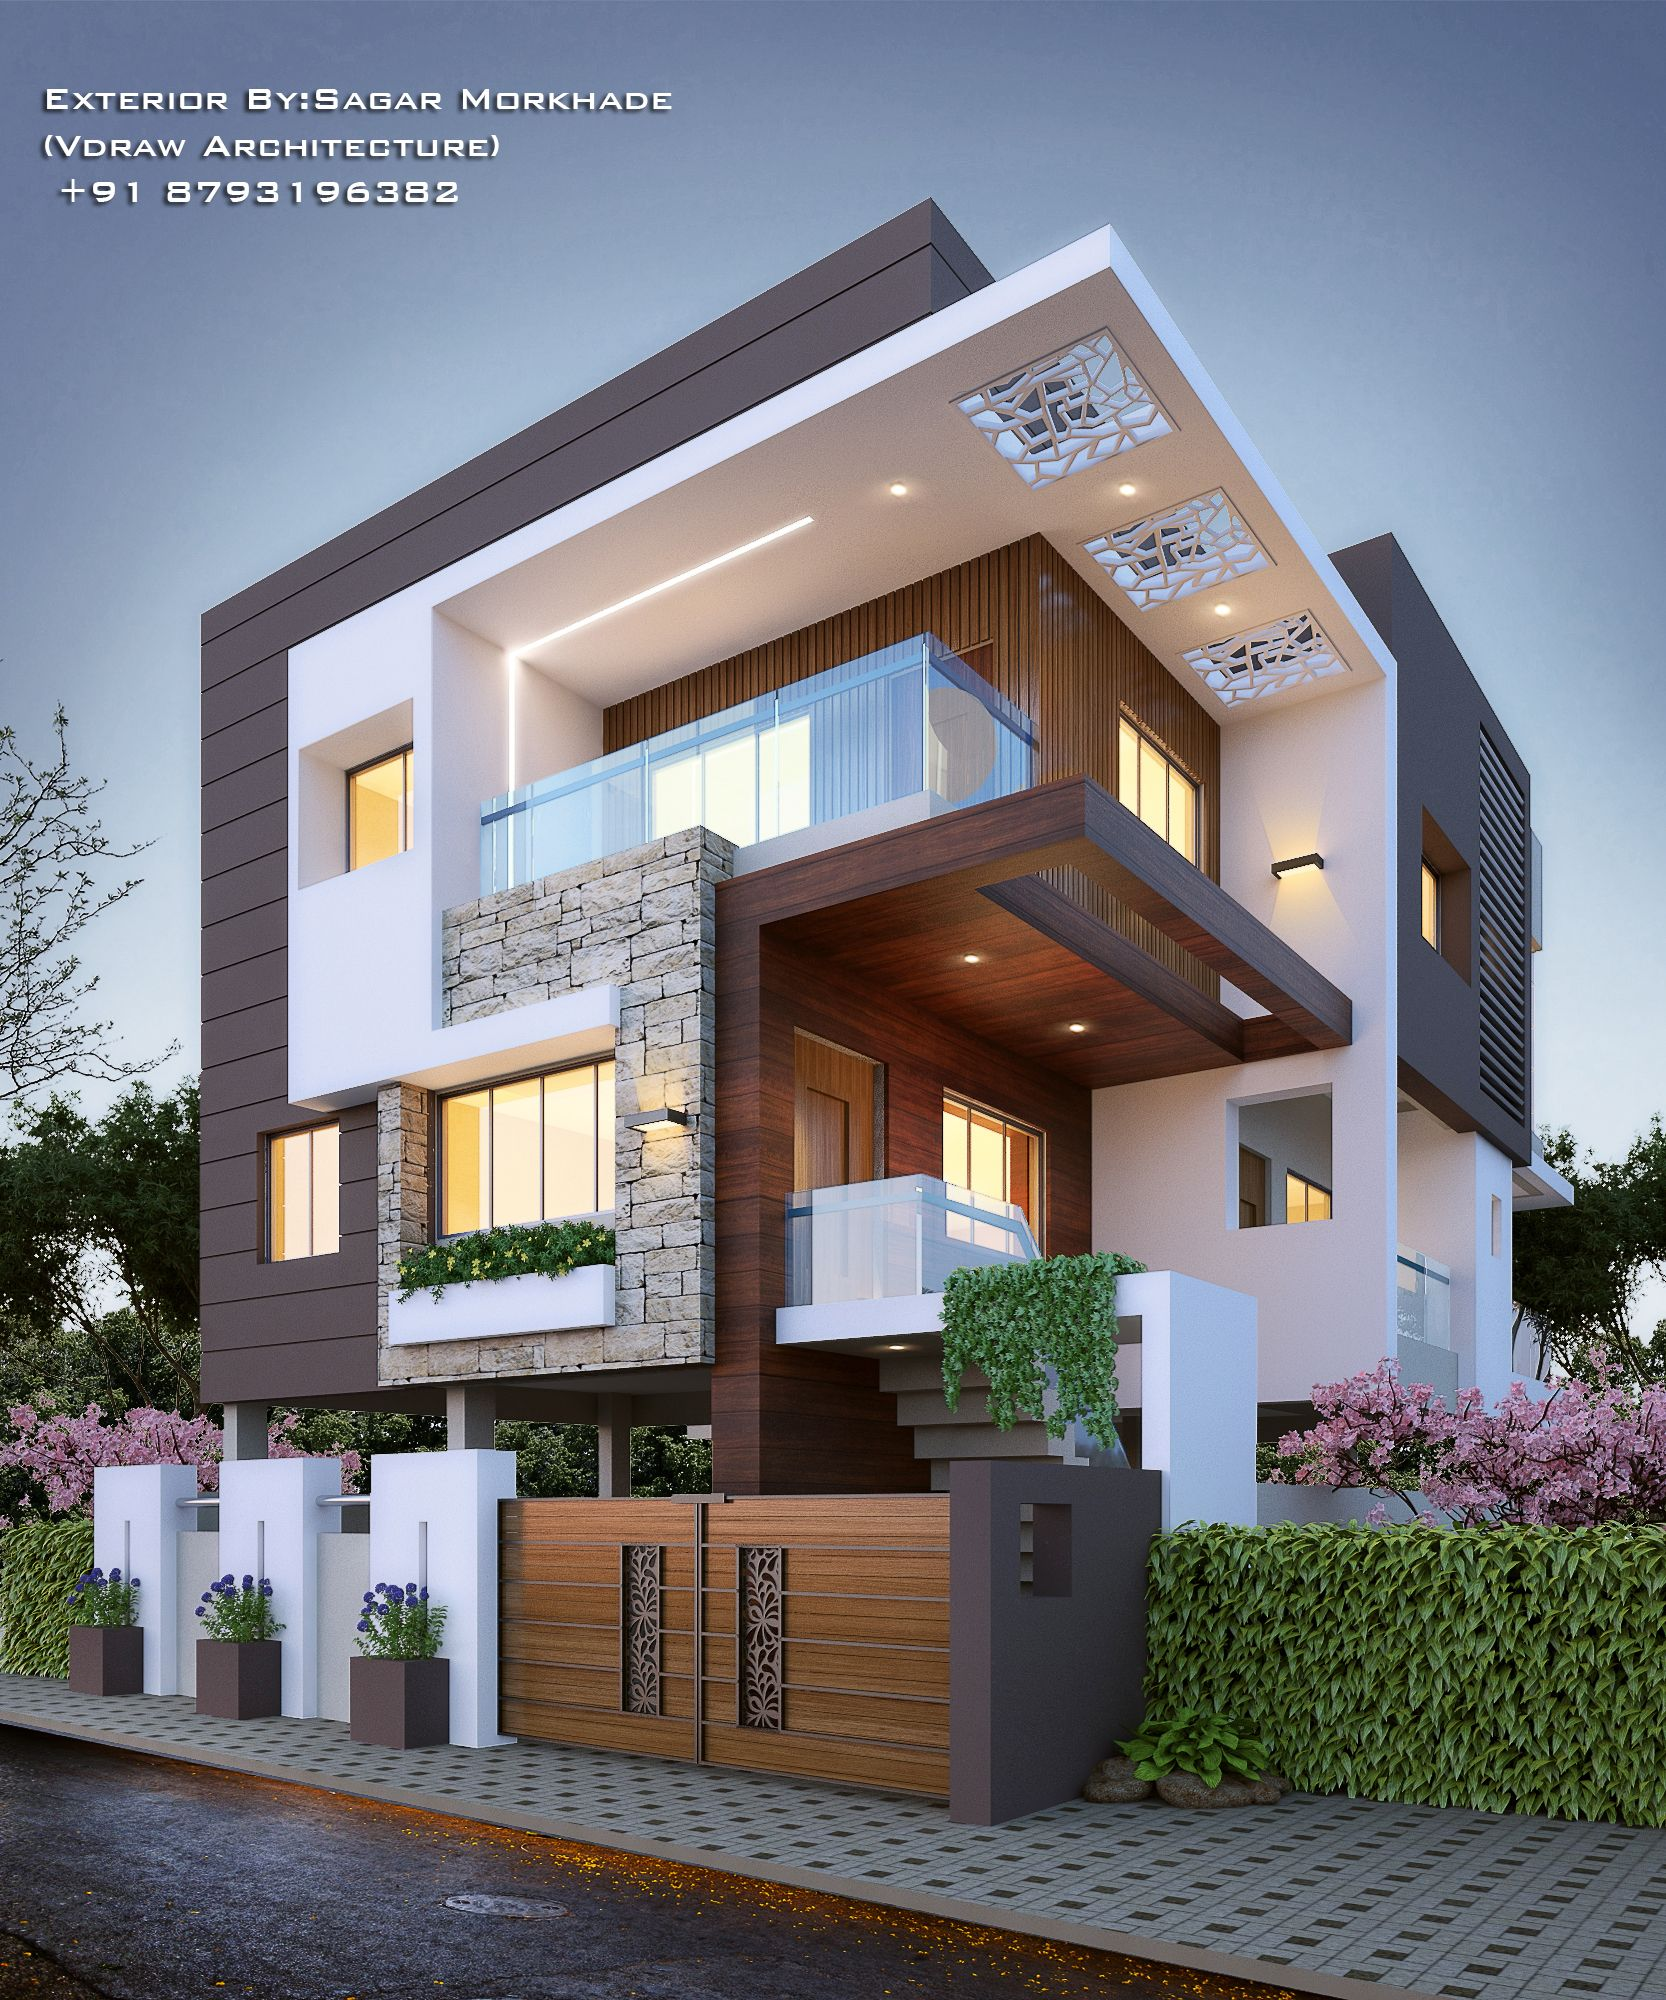 Home Design Ideas Build: #Modern #Residential #Exterior By, Ar. Sagar Morkhade